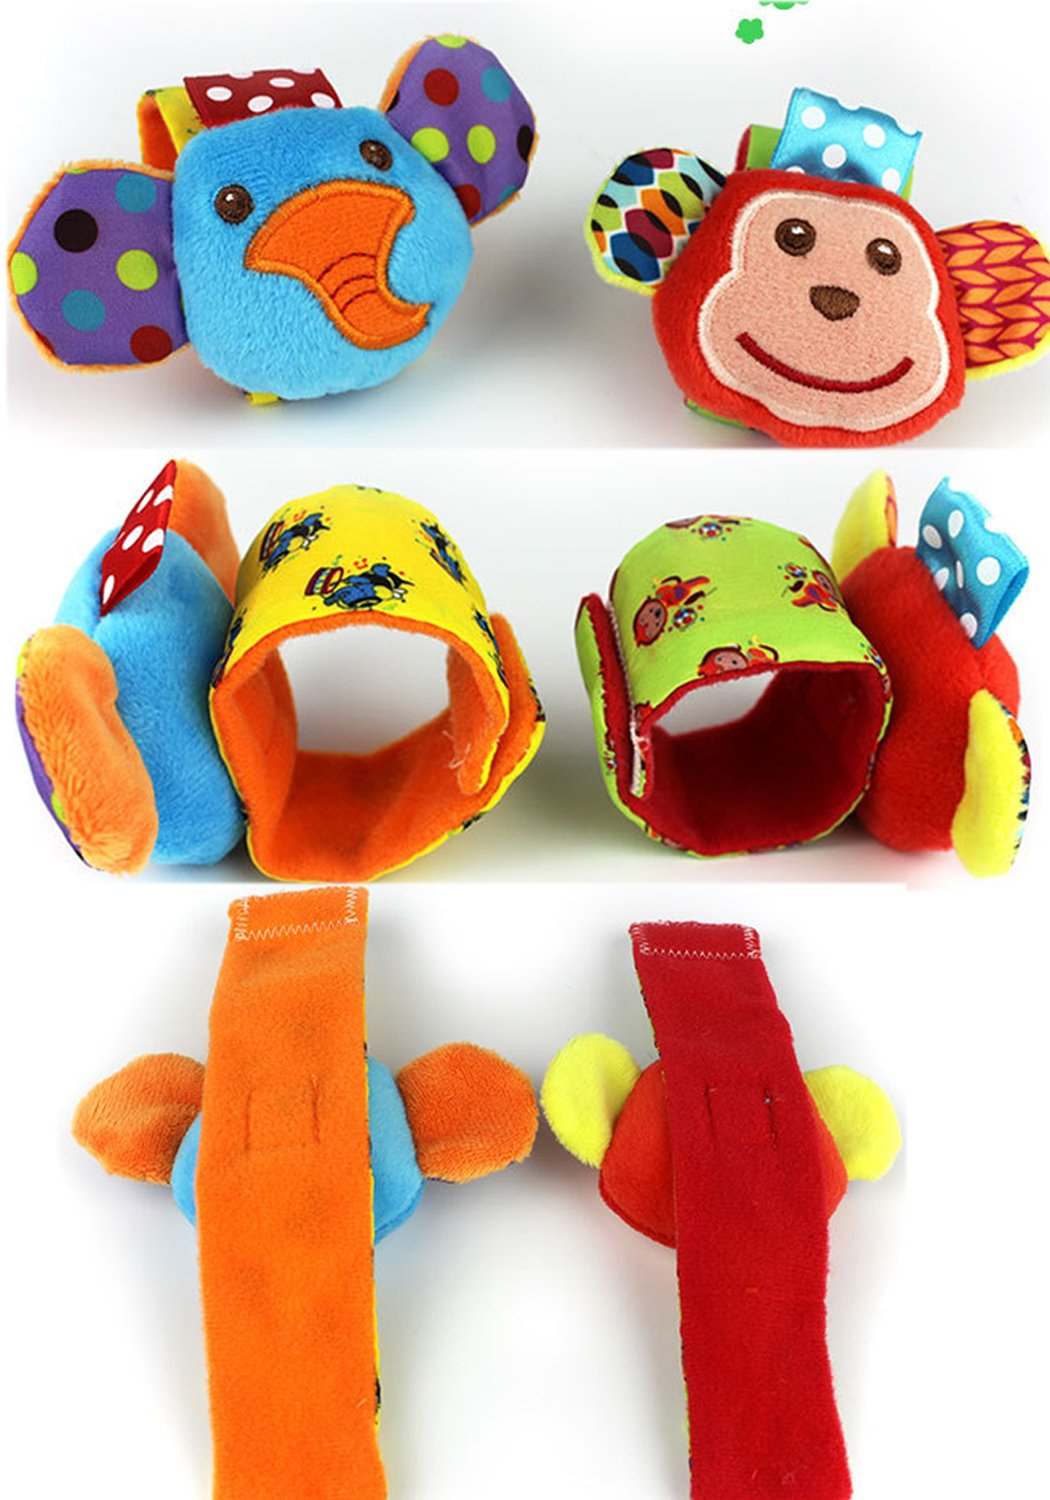 SKK Baby 4 Animal Wrist Rattle and Foot Finder Socks Set Development Toys Gift For Infant Boy Girl 3